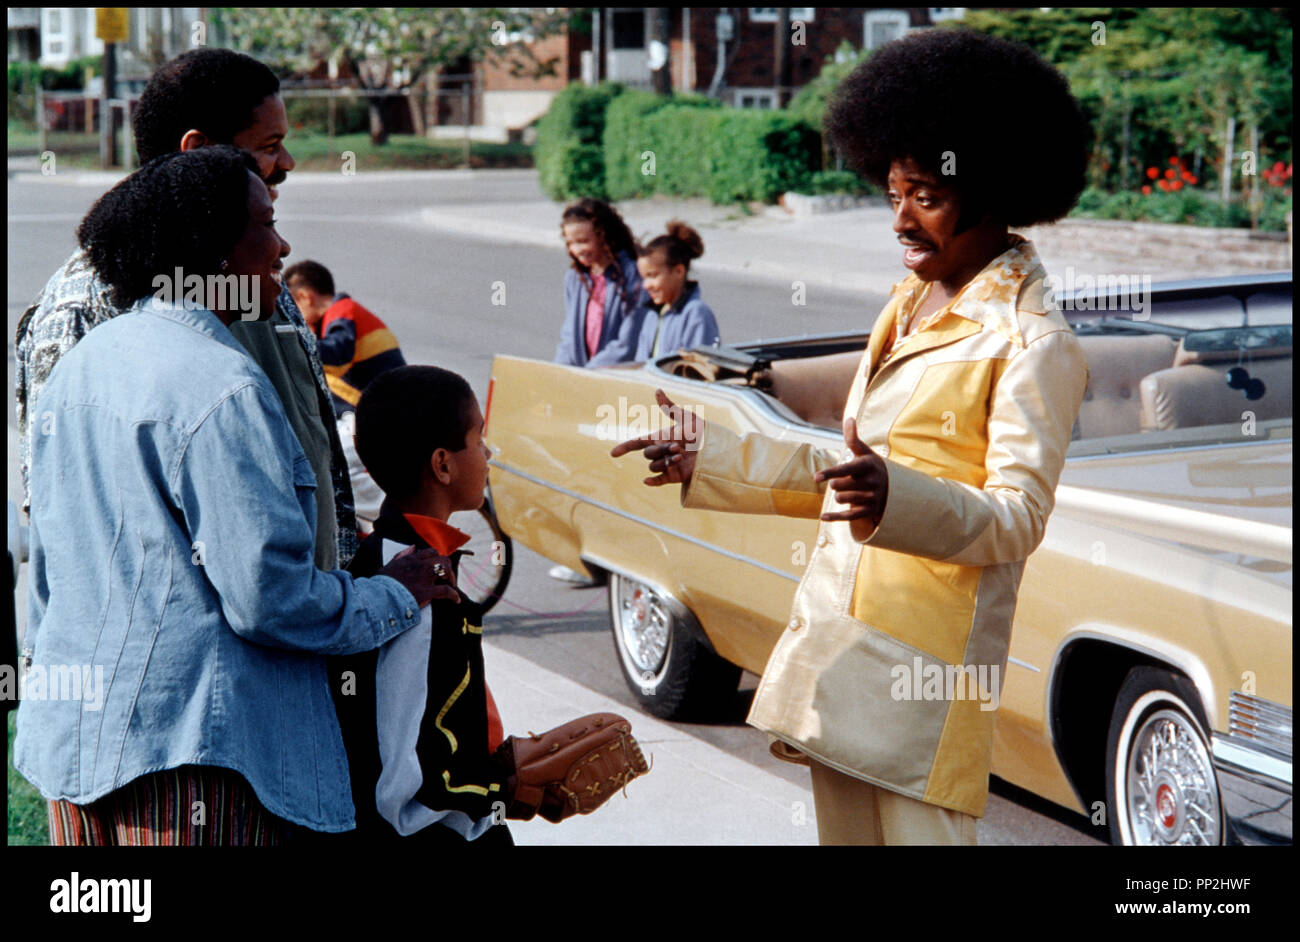 Afro funk. S19JG4 (RF). Prod DB © Universal   DR UNDERCOVER BROTHER  (UNDERCOVER BROTHER) de Malcolm D 5cb1d1695a7f